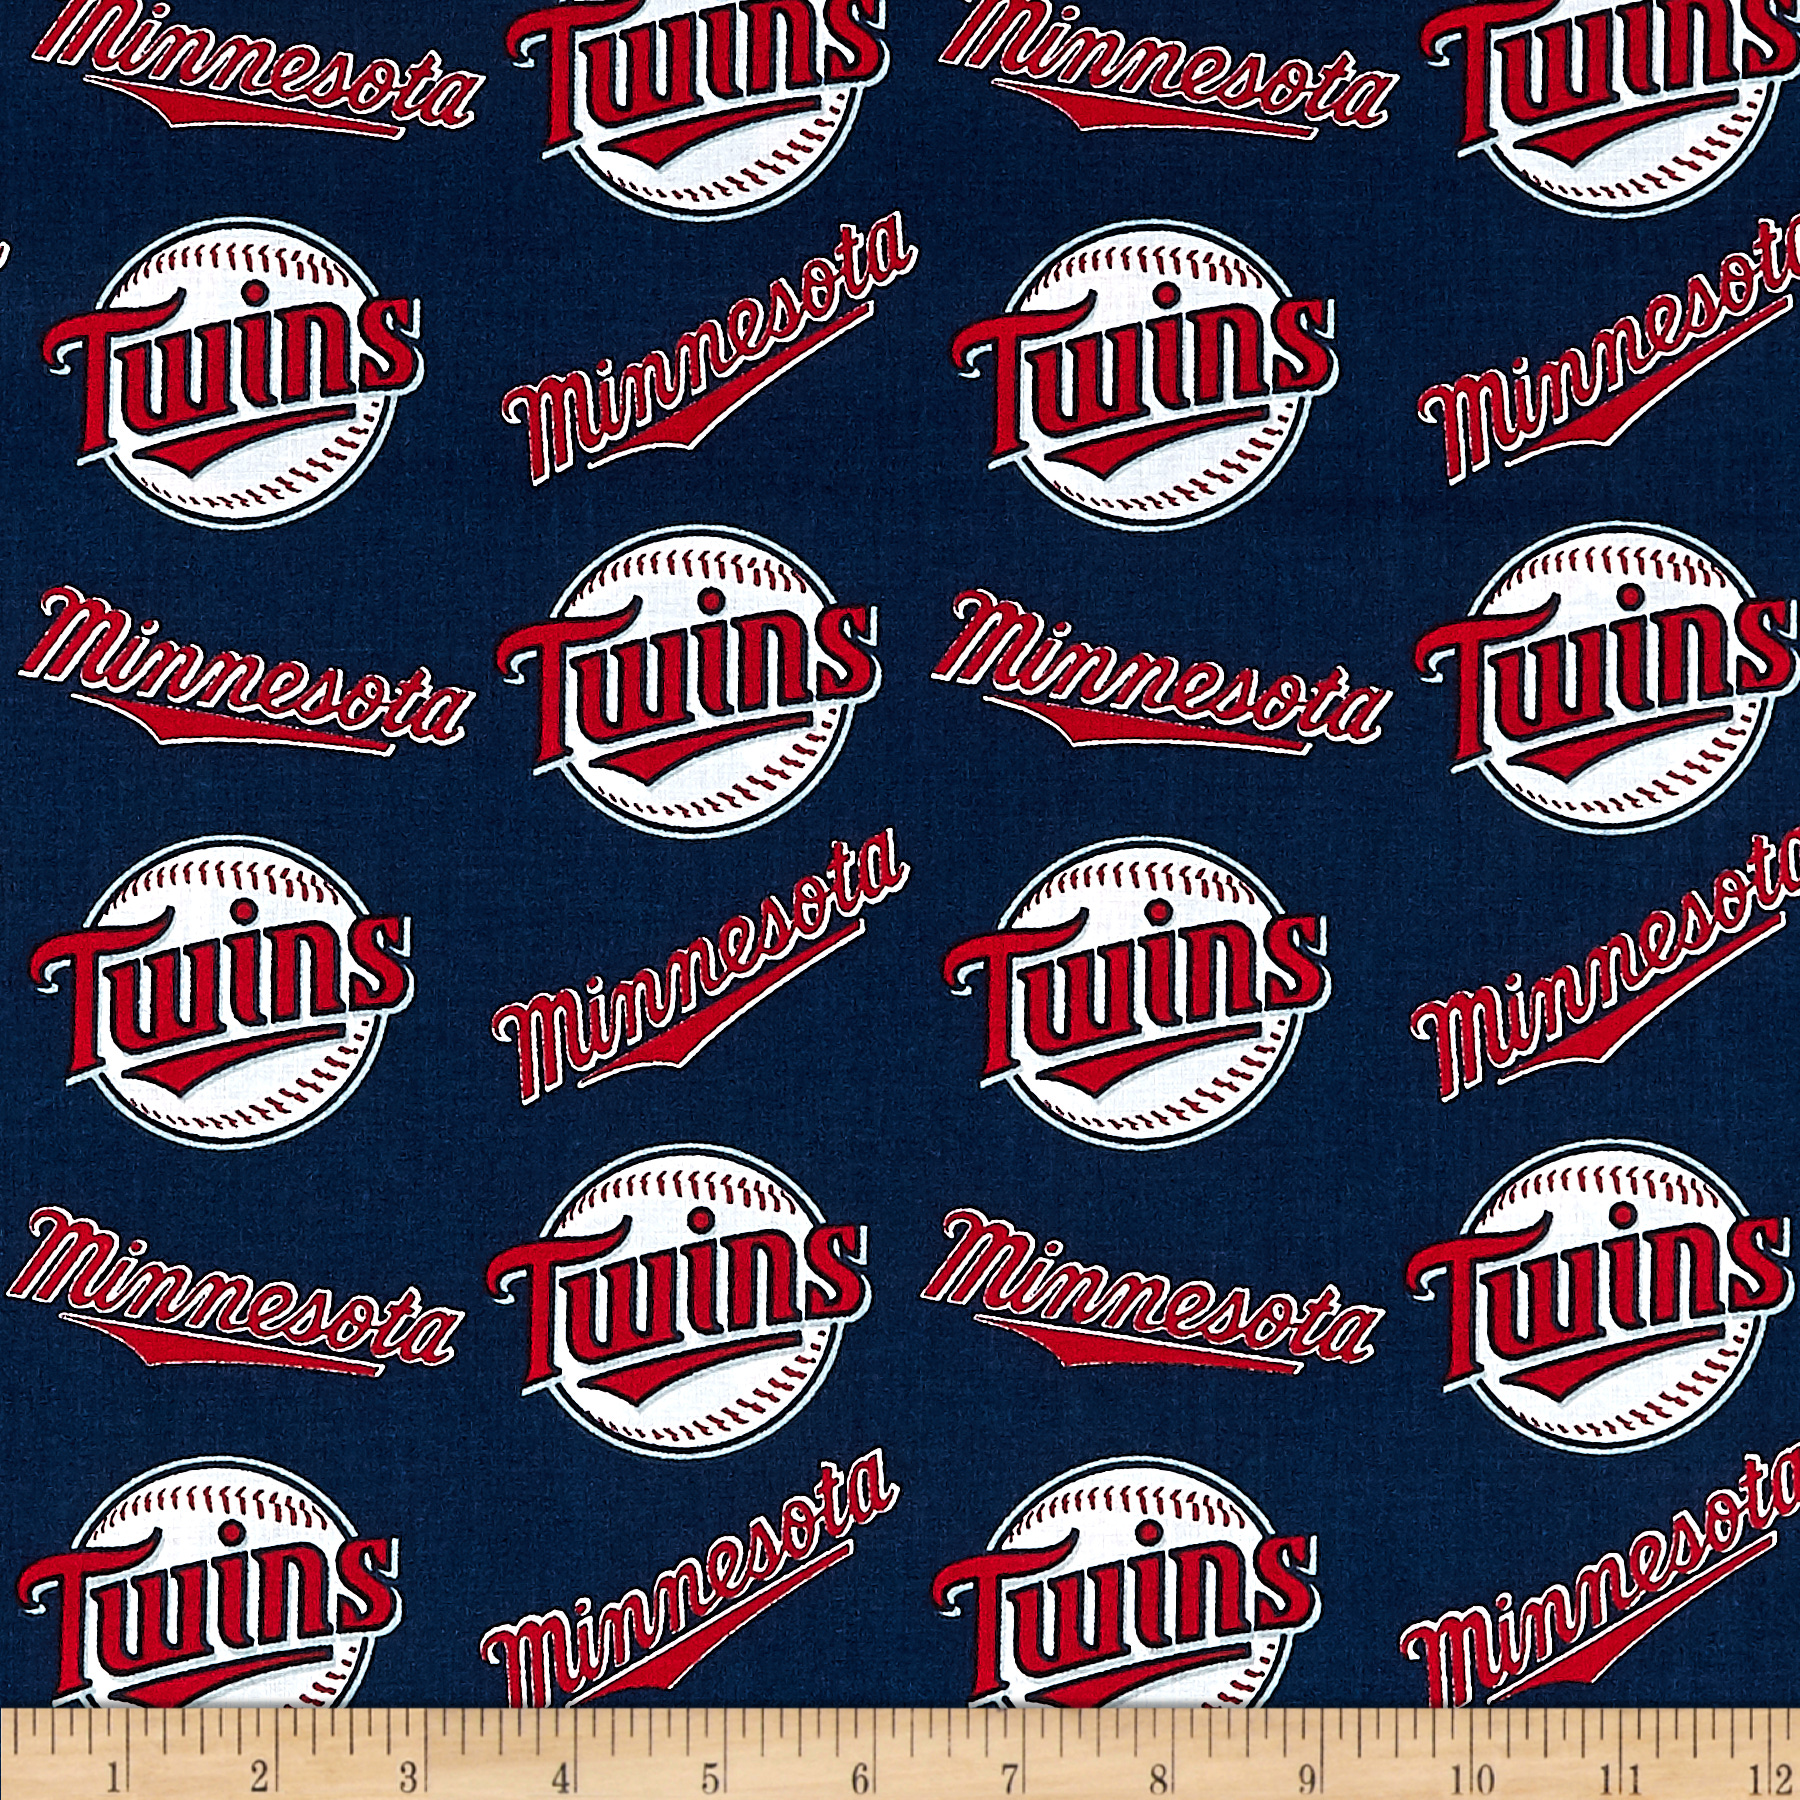 MLB Cotton Broadcloth Minnesota Twins Red/White Fabric by Fabric Traditions in USA